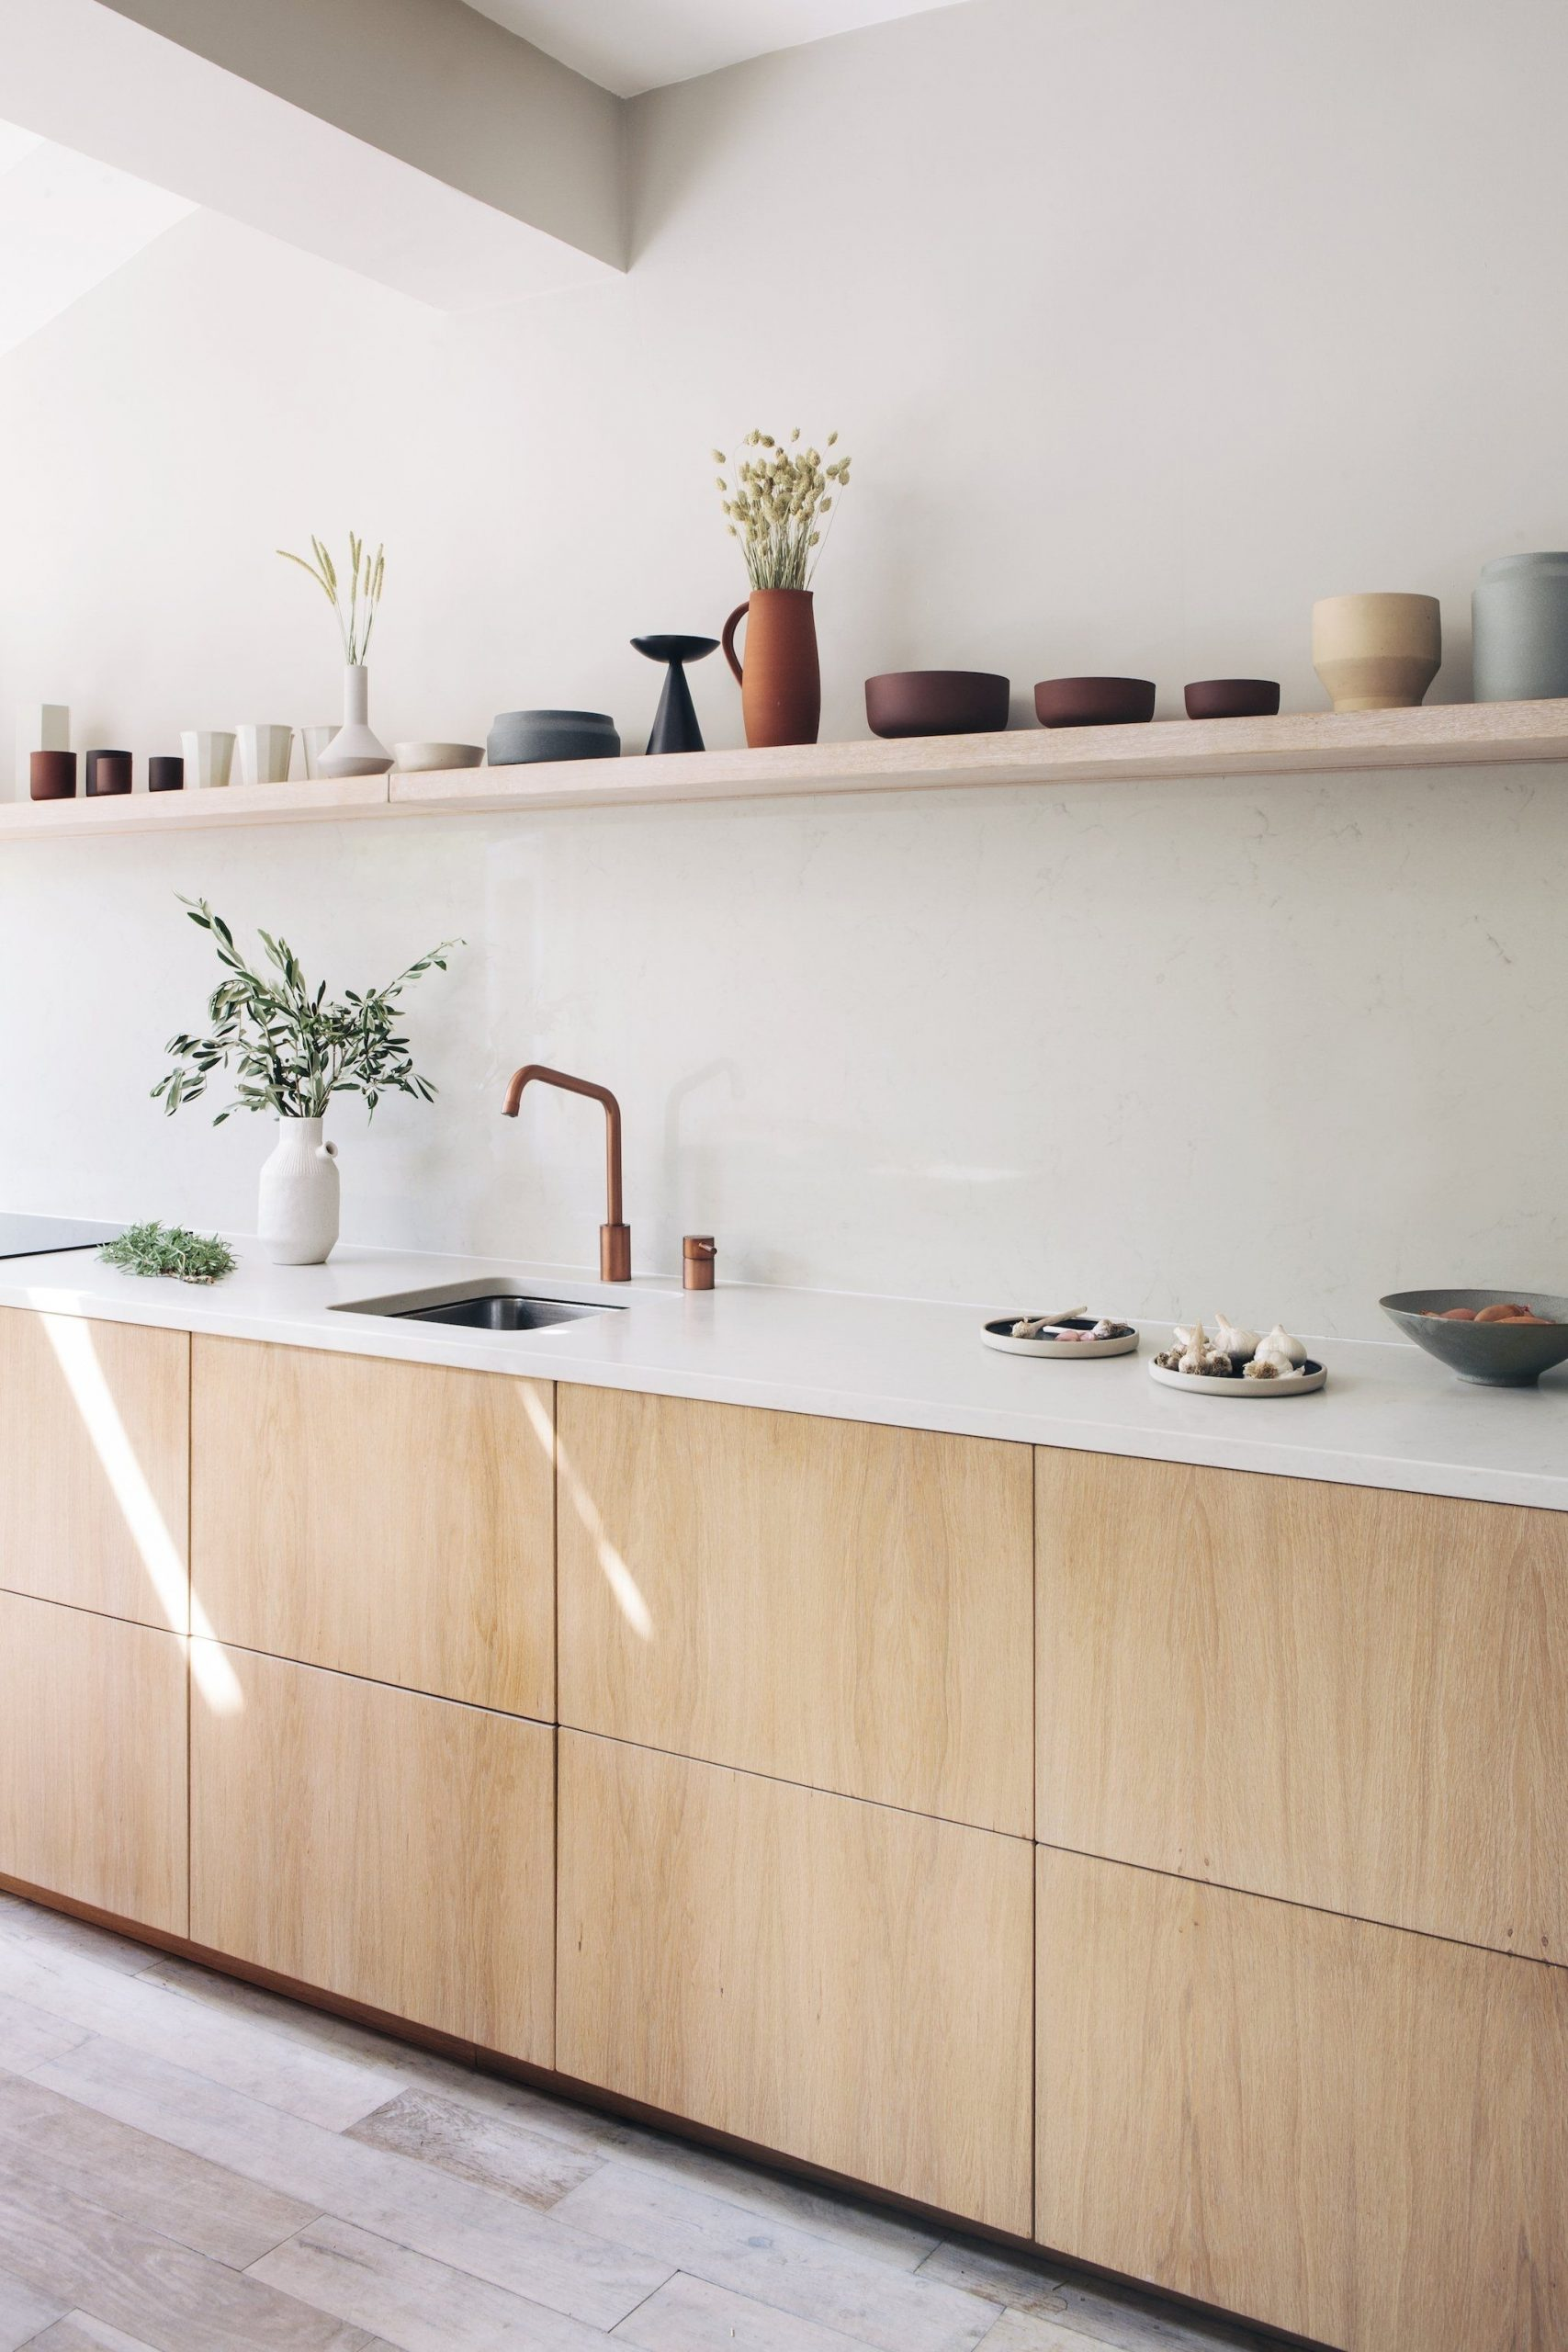 Kitchen Doors To Fit Ikea Cabinets Uk - Kitchen and Bath